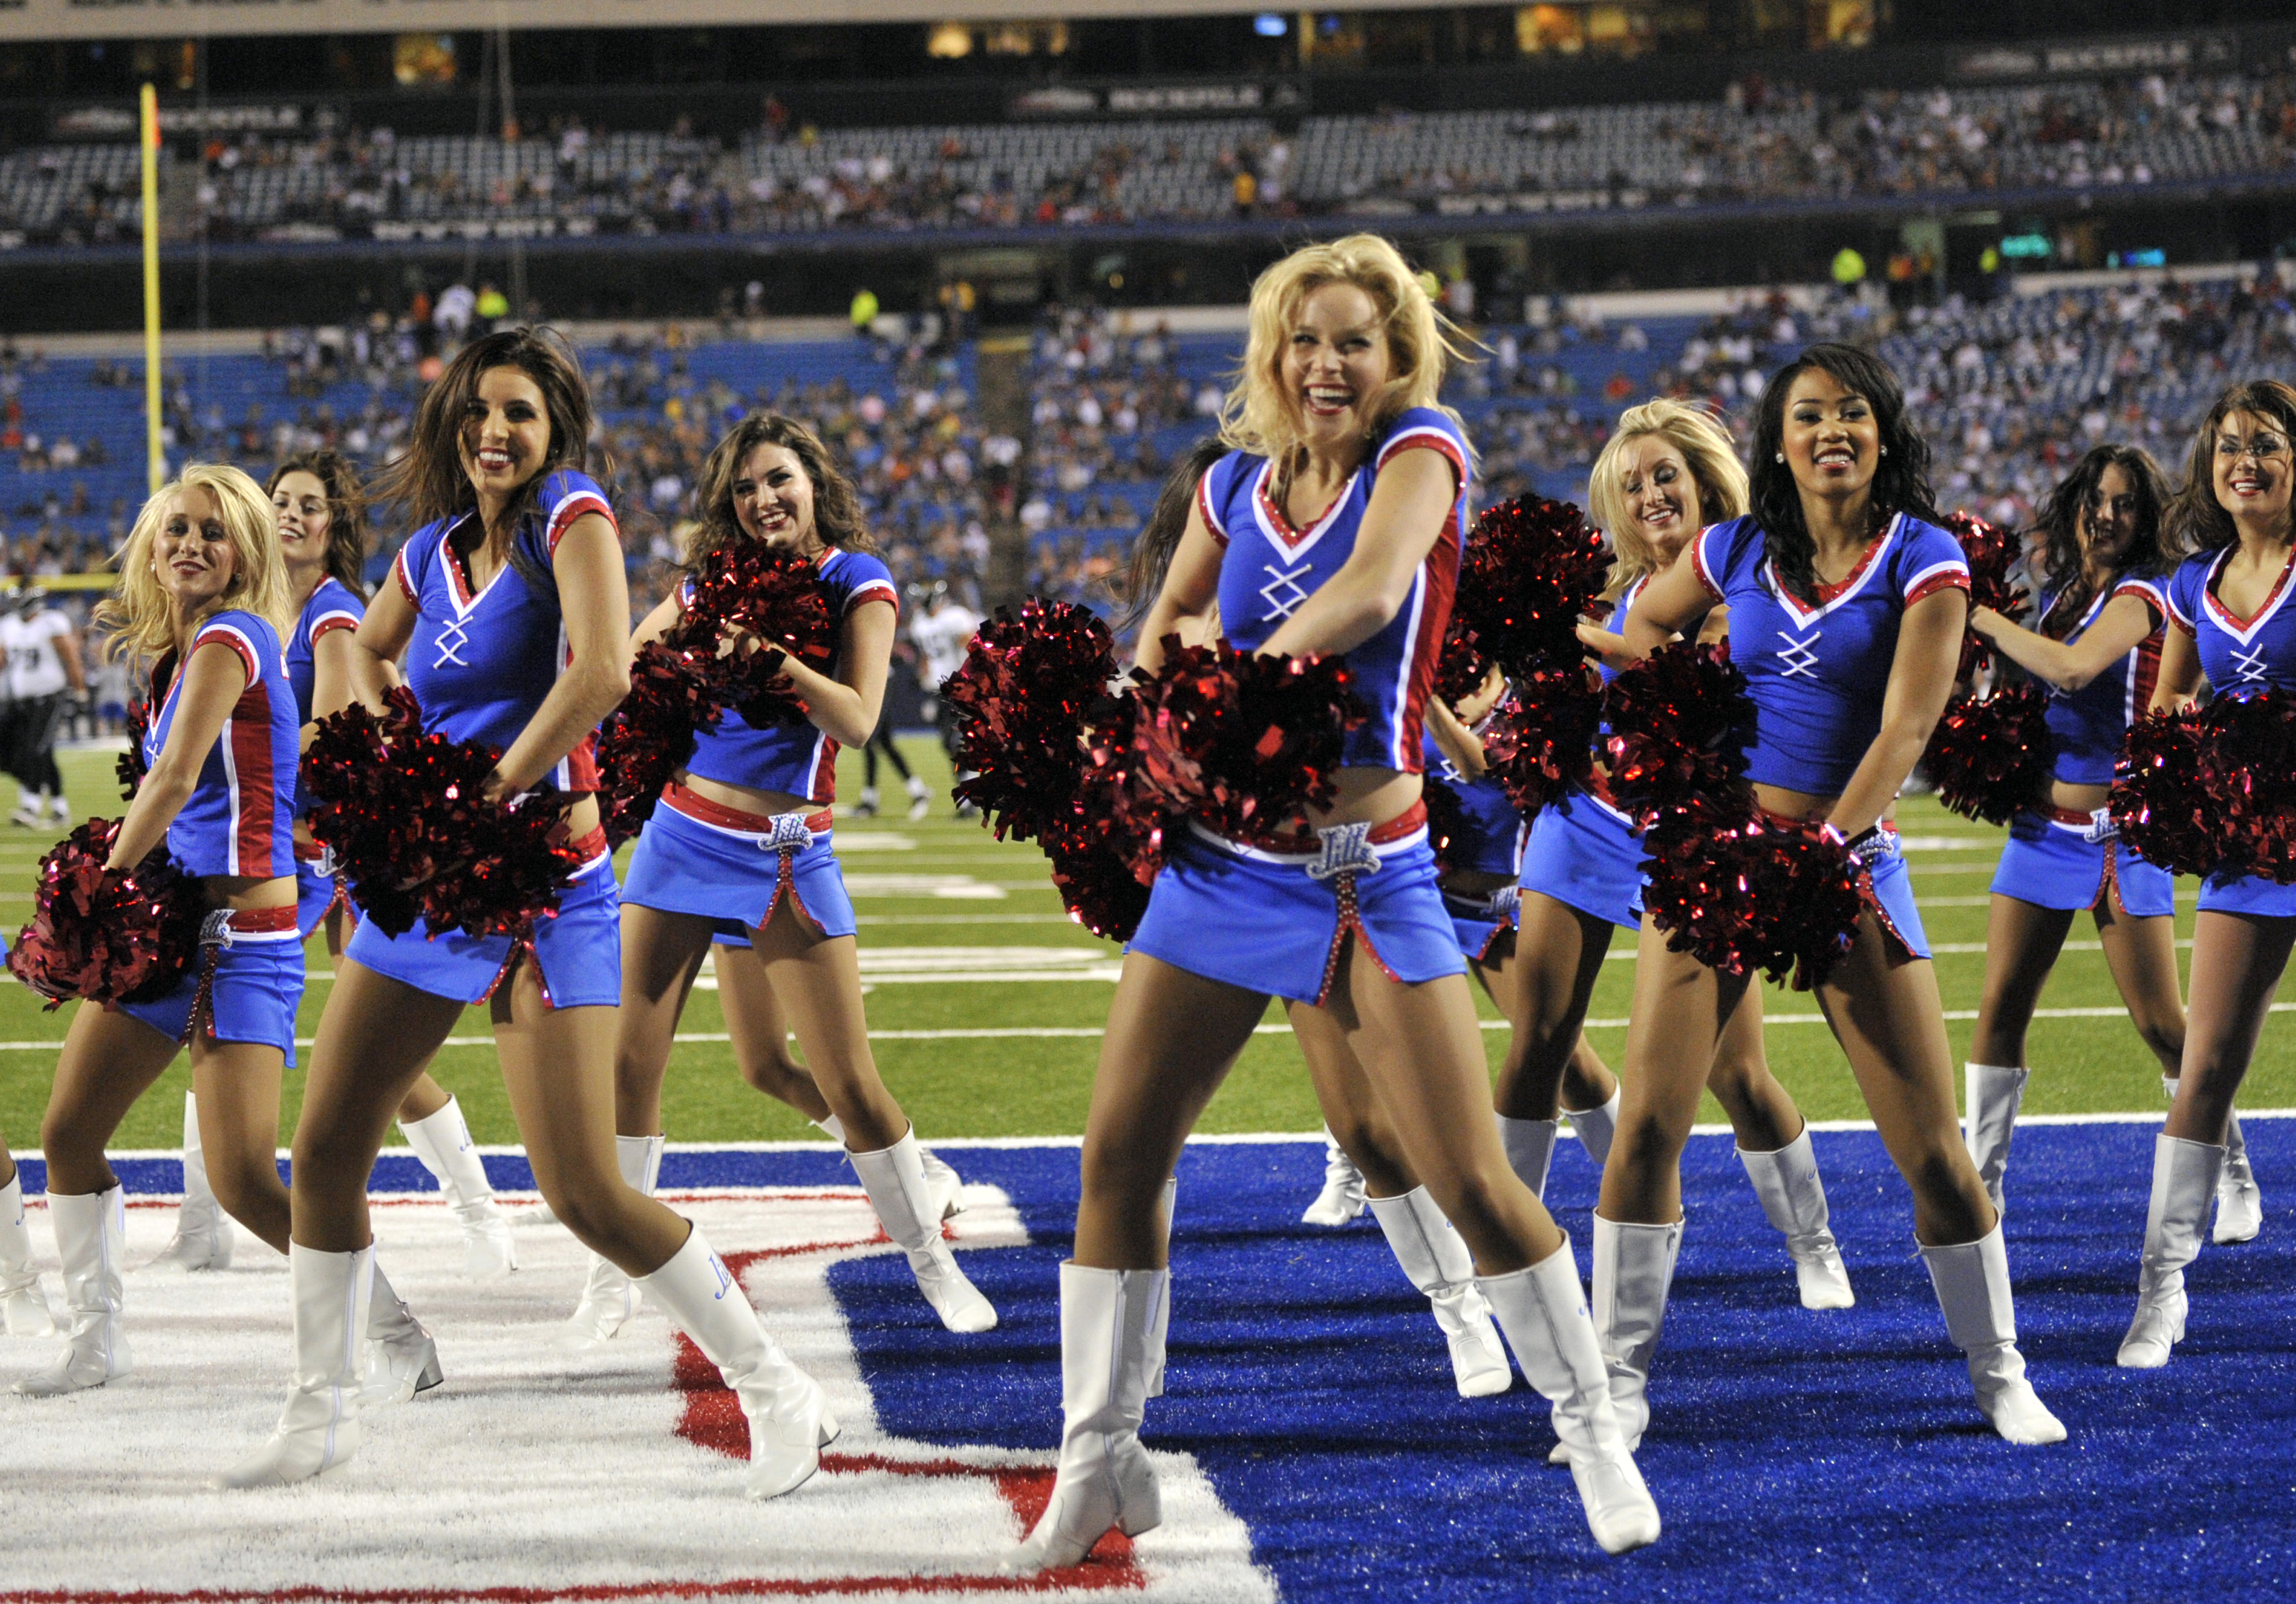 Used Cars Buffalo >> Buffalo Bills' Cheerleaders Are Right to Sue for Minimum Wage | Thomas Jefferson Street | US News